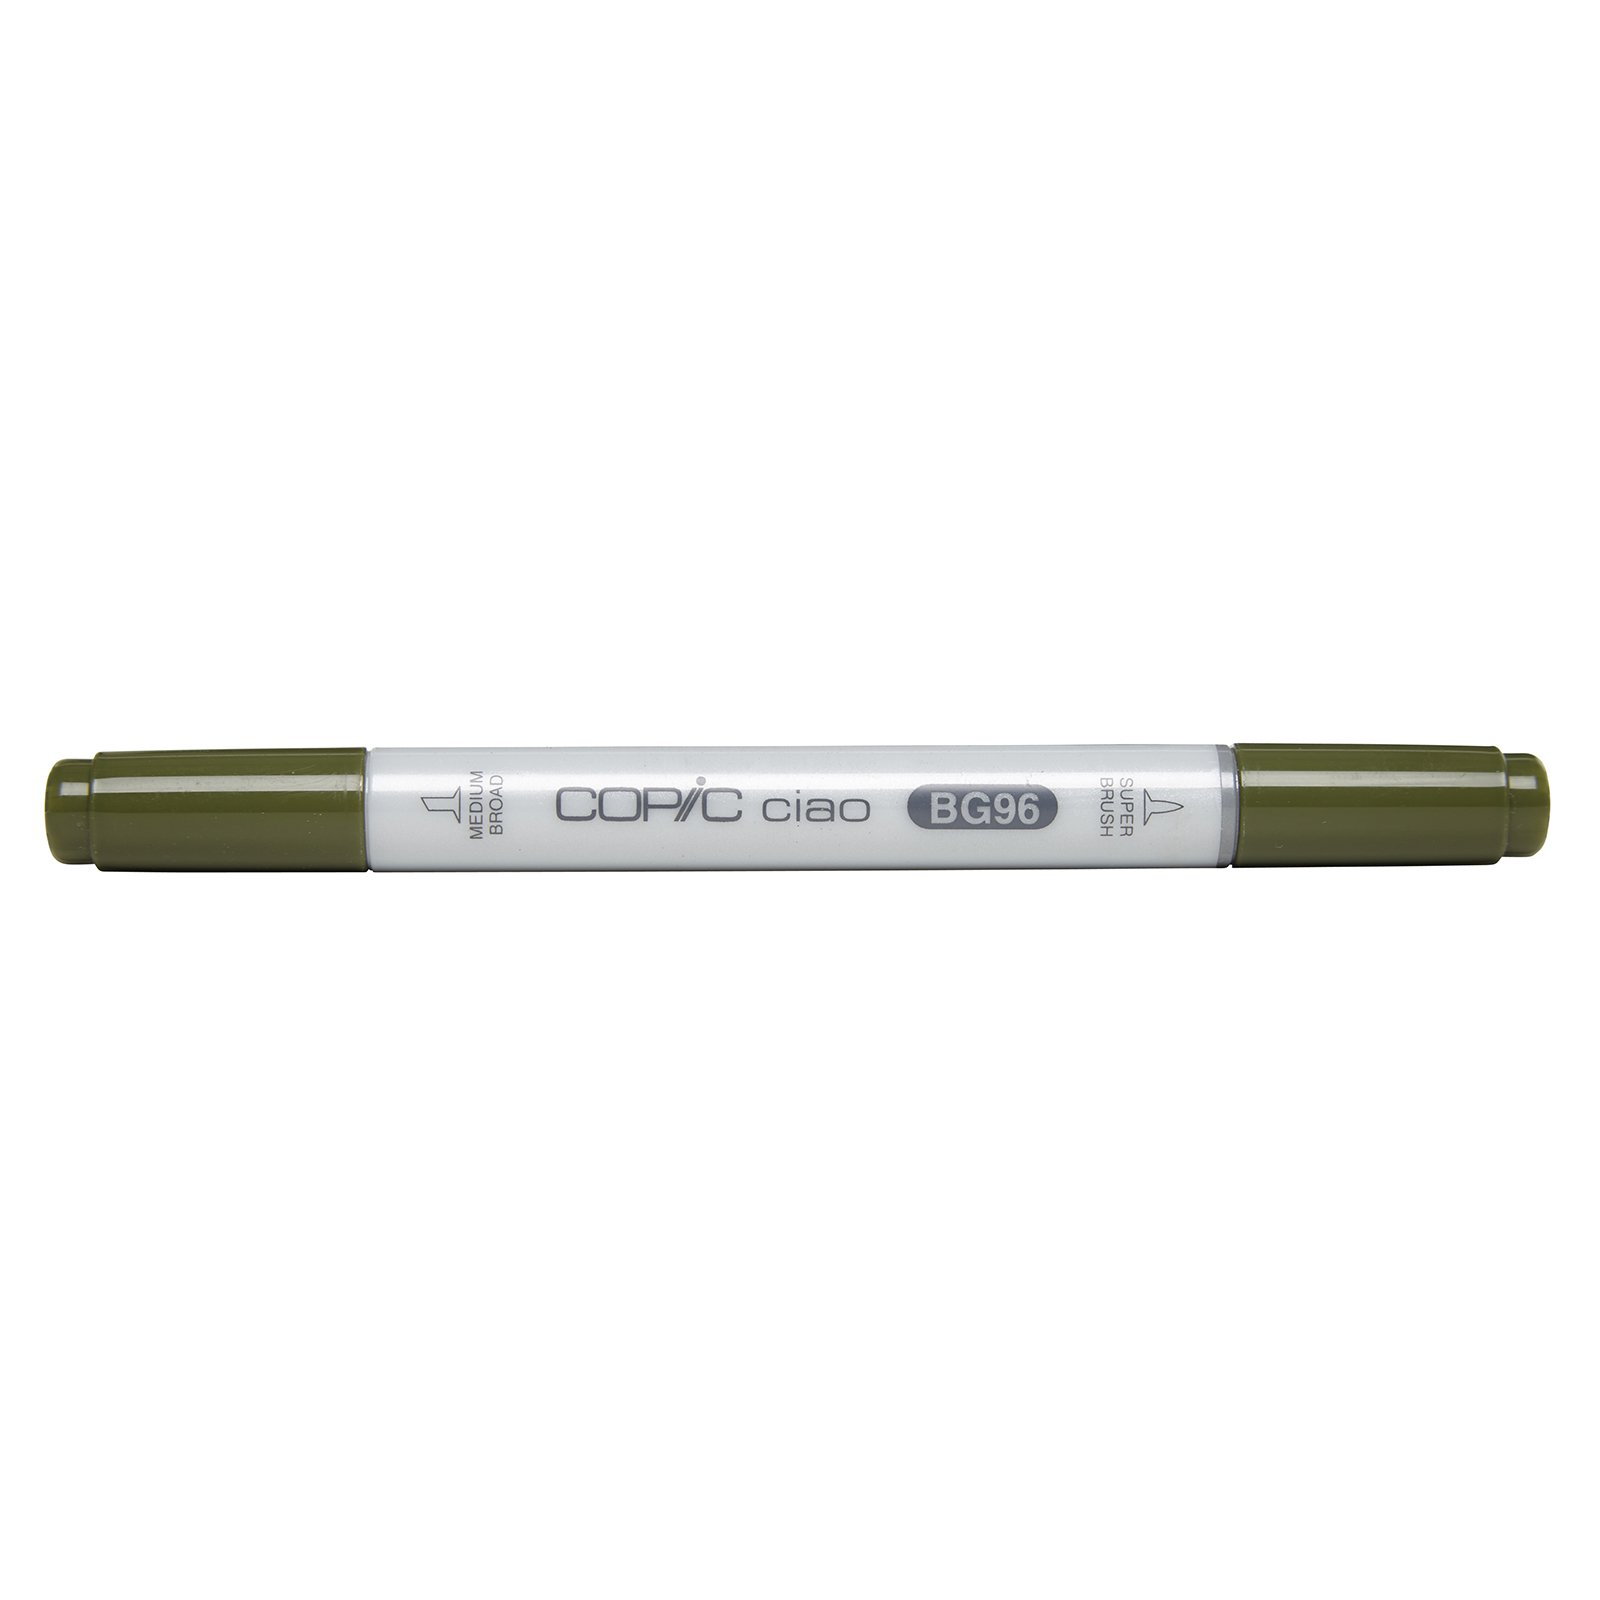 Copic Markers BG96 Ciao with Replaceable Nib, Bush